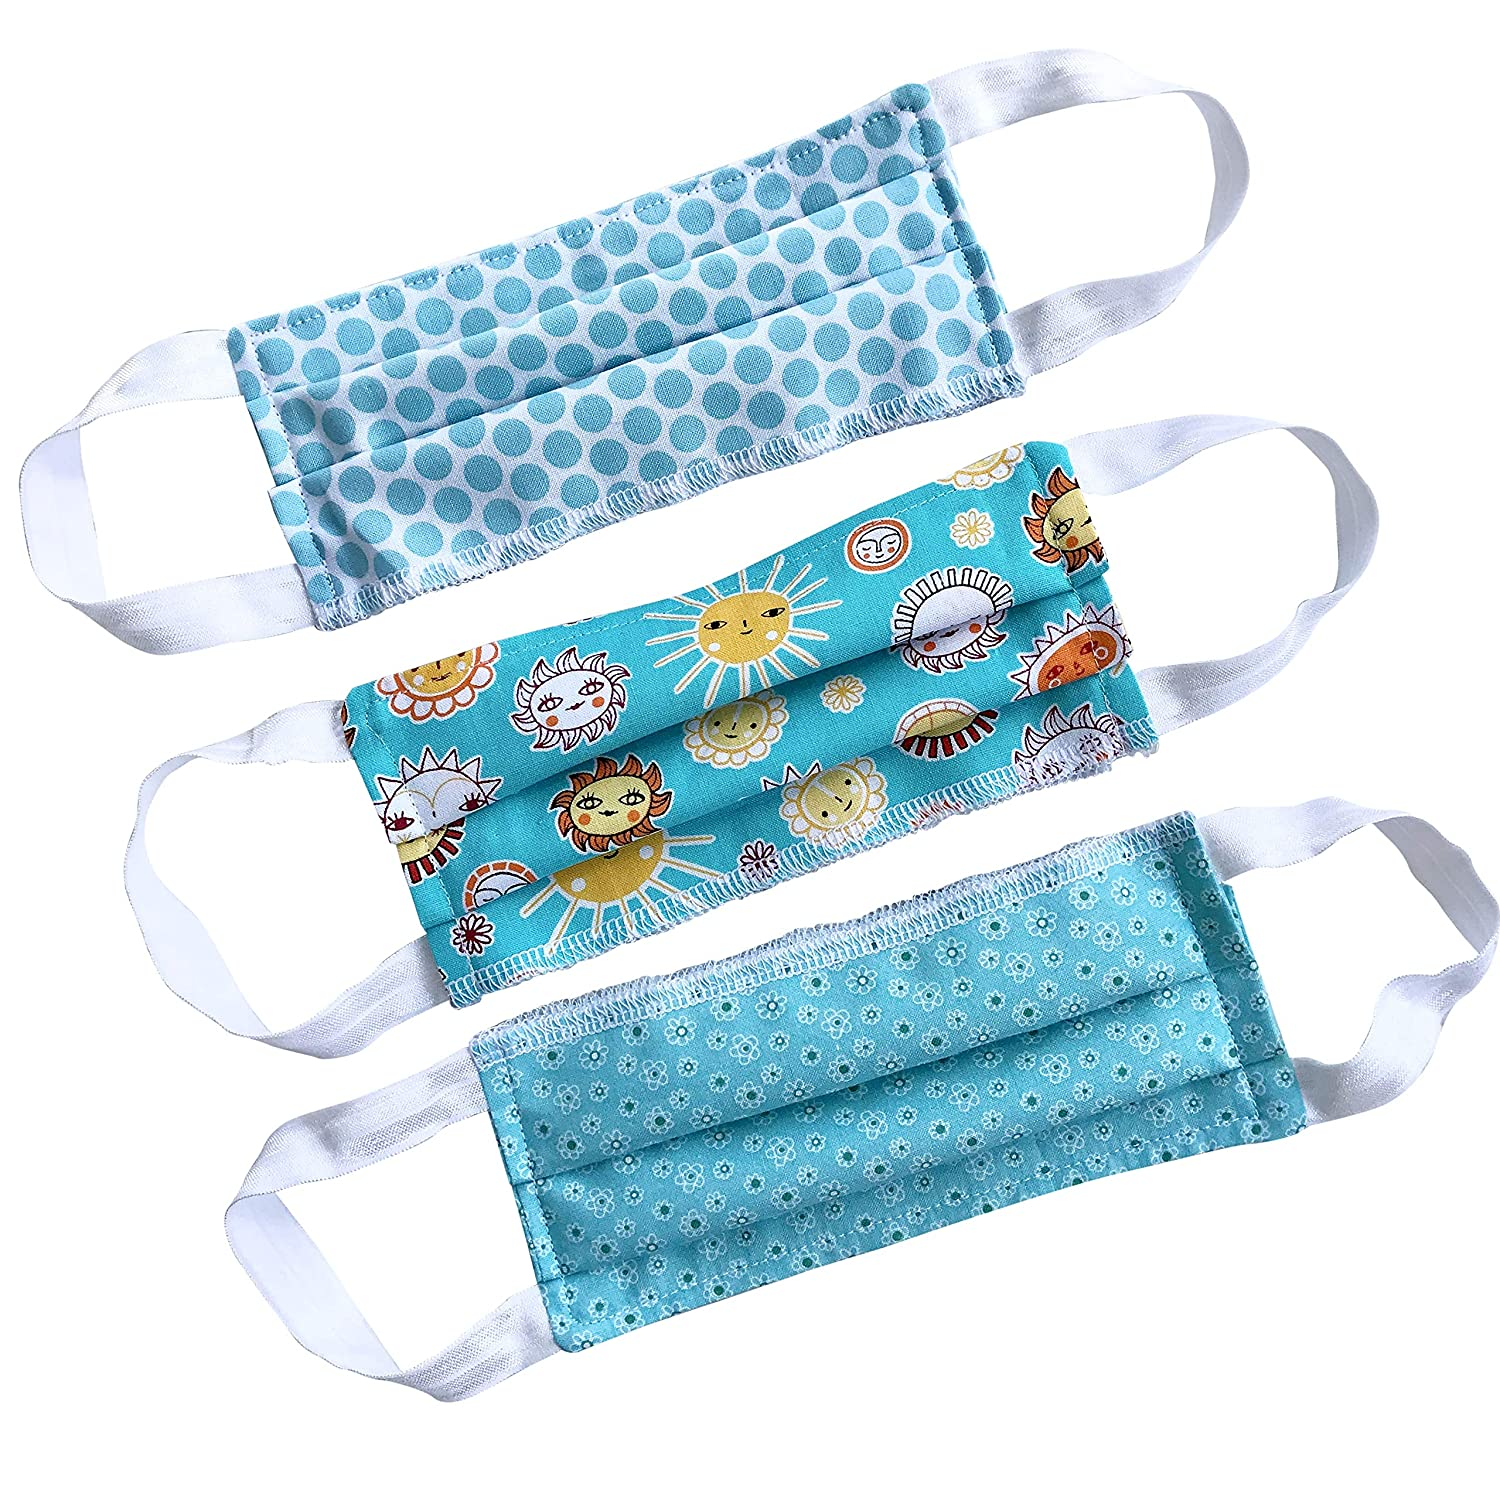 Amazon Com Set Of 3 Turquoise Pattern Petite Teen Or Woman Handmade Washable Reusable Pleated Cotton Face Cover Shield Handmade See more of miss petite & miss petite teen republica dominicana on facebook. amazon com